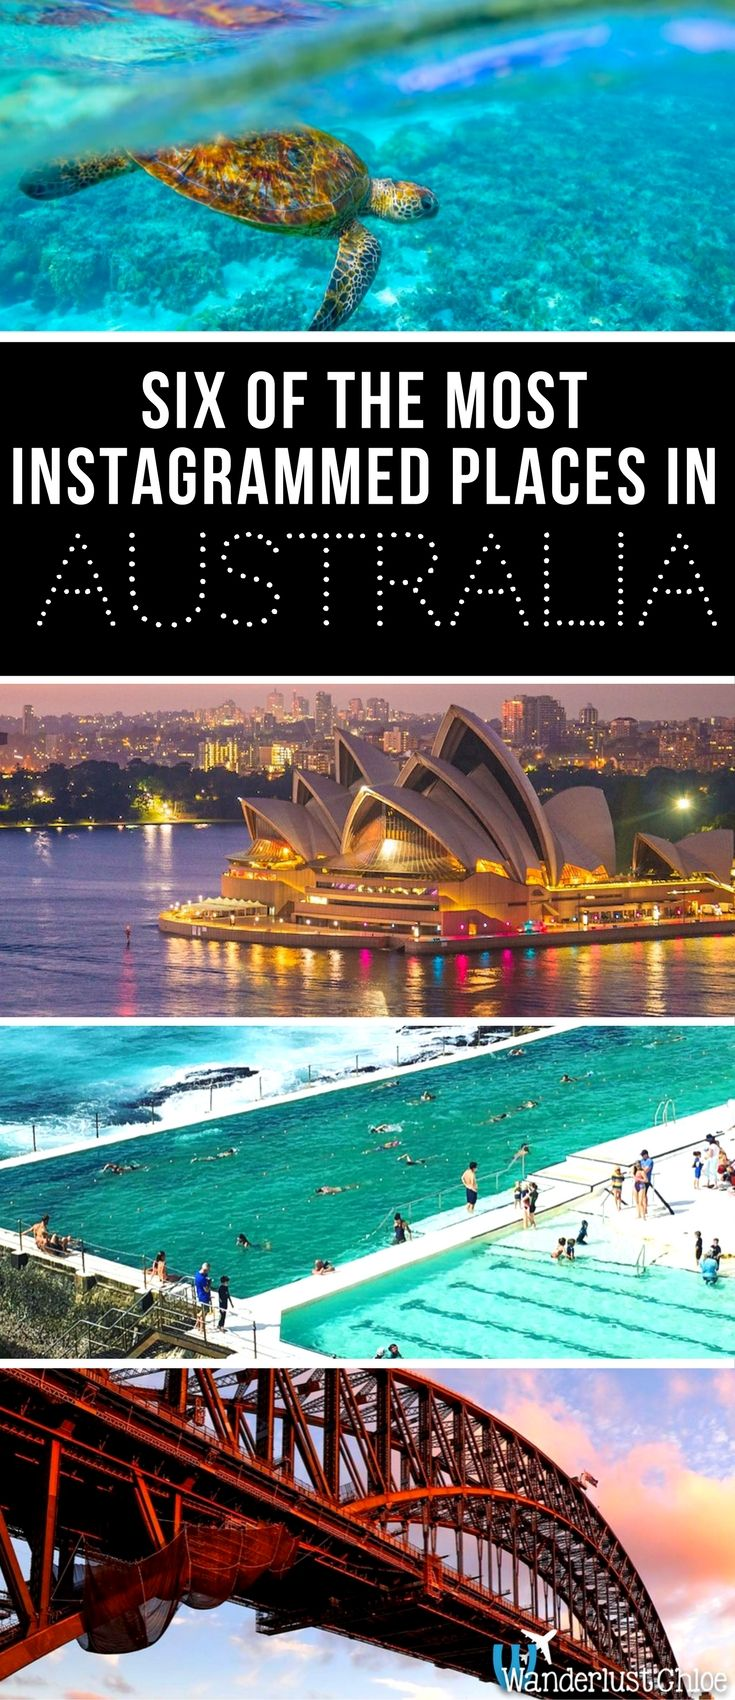 Six Of The Most Instagrammed Places In Australia